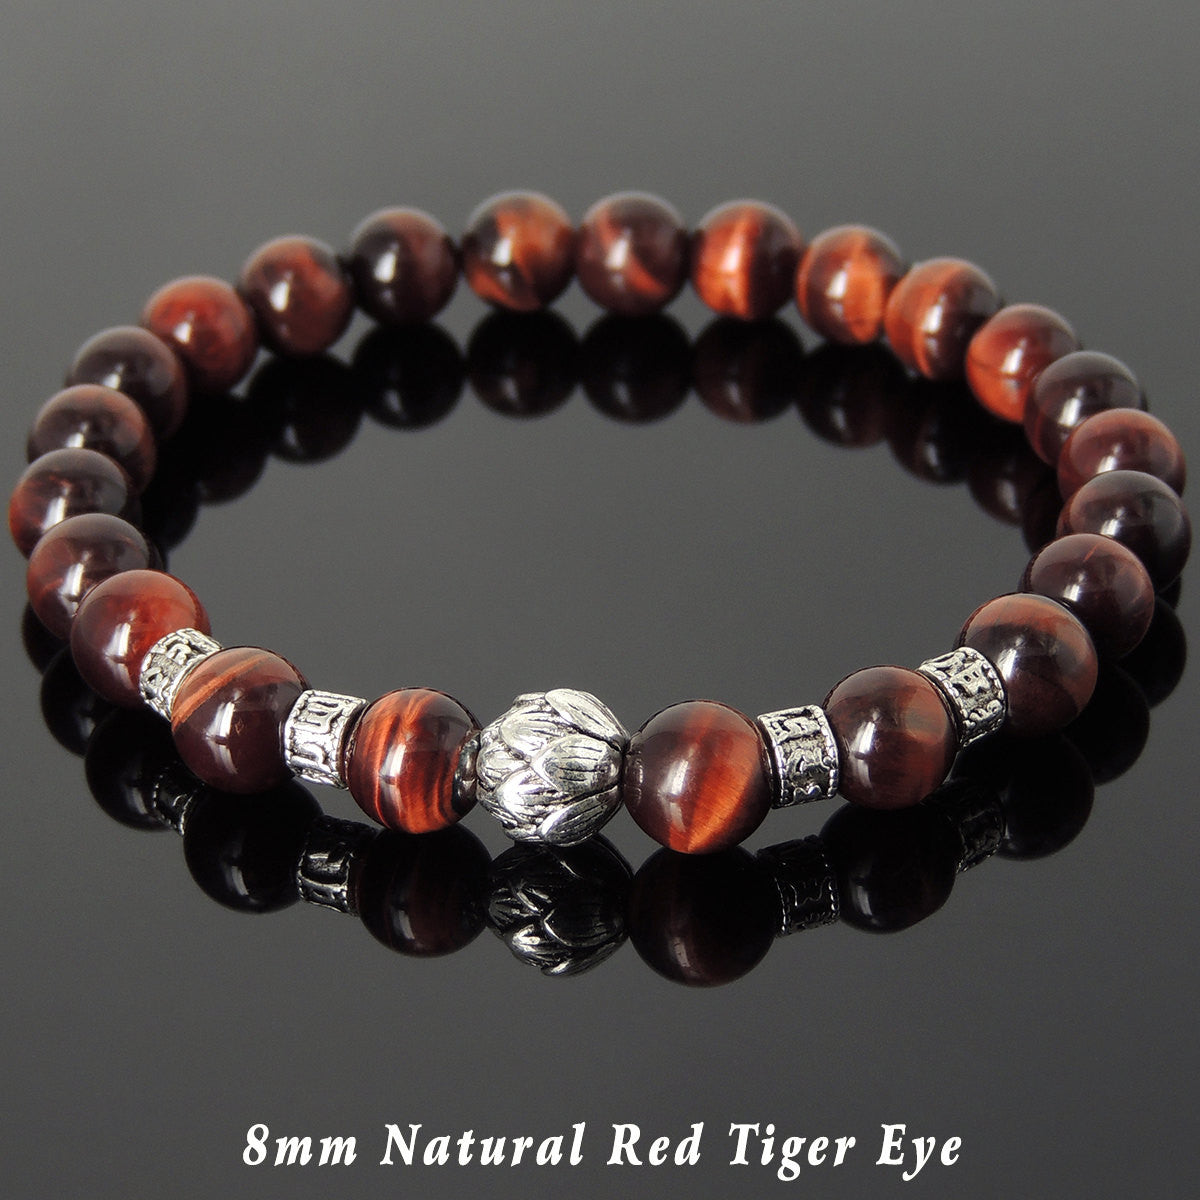 8mm Red Tiger Eye Healing Gemstone Bracelet with Tibetan Silver Lotus Bead & OM Meditation Spacer Beads - Handmade by Gem & Silver TSB317